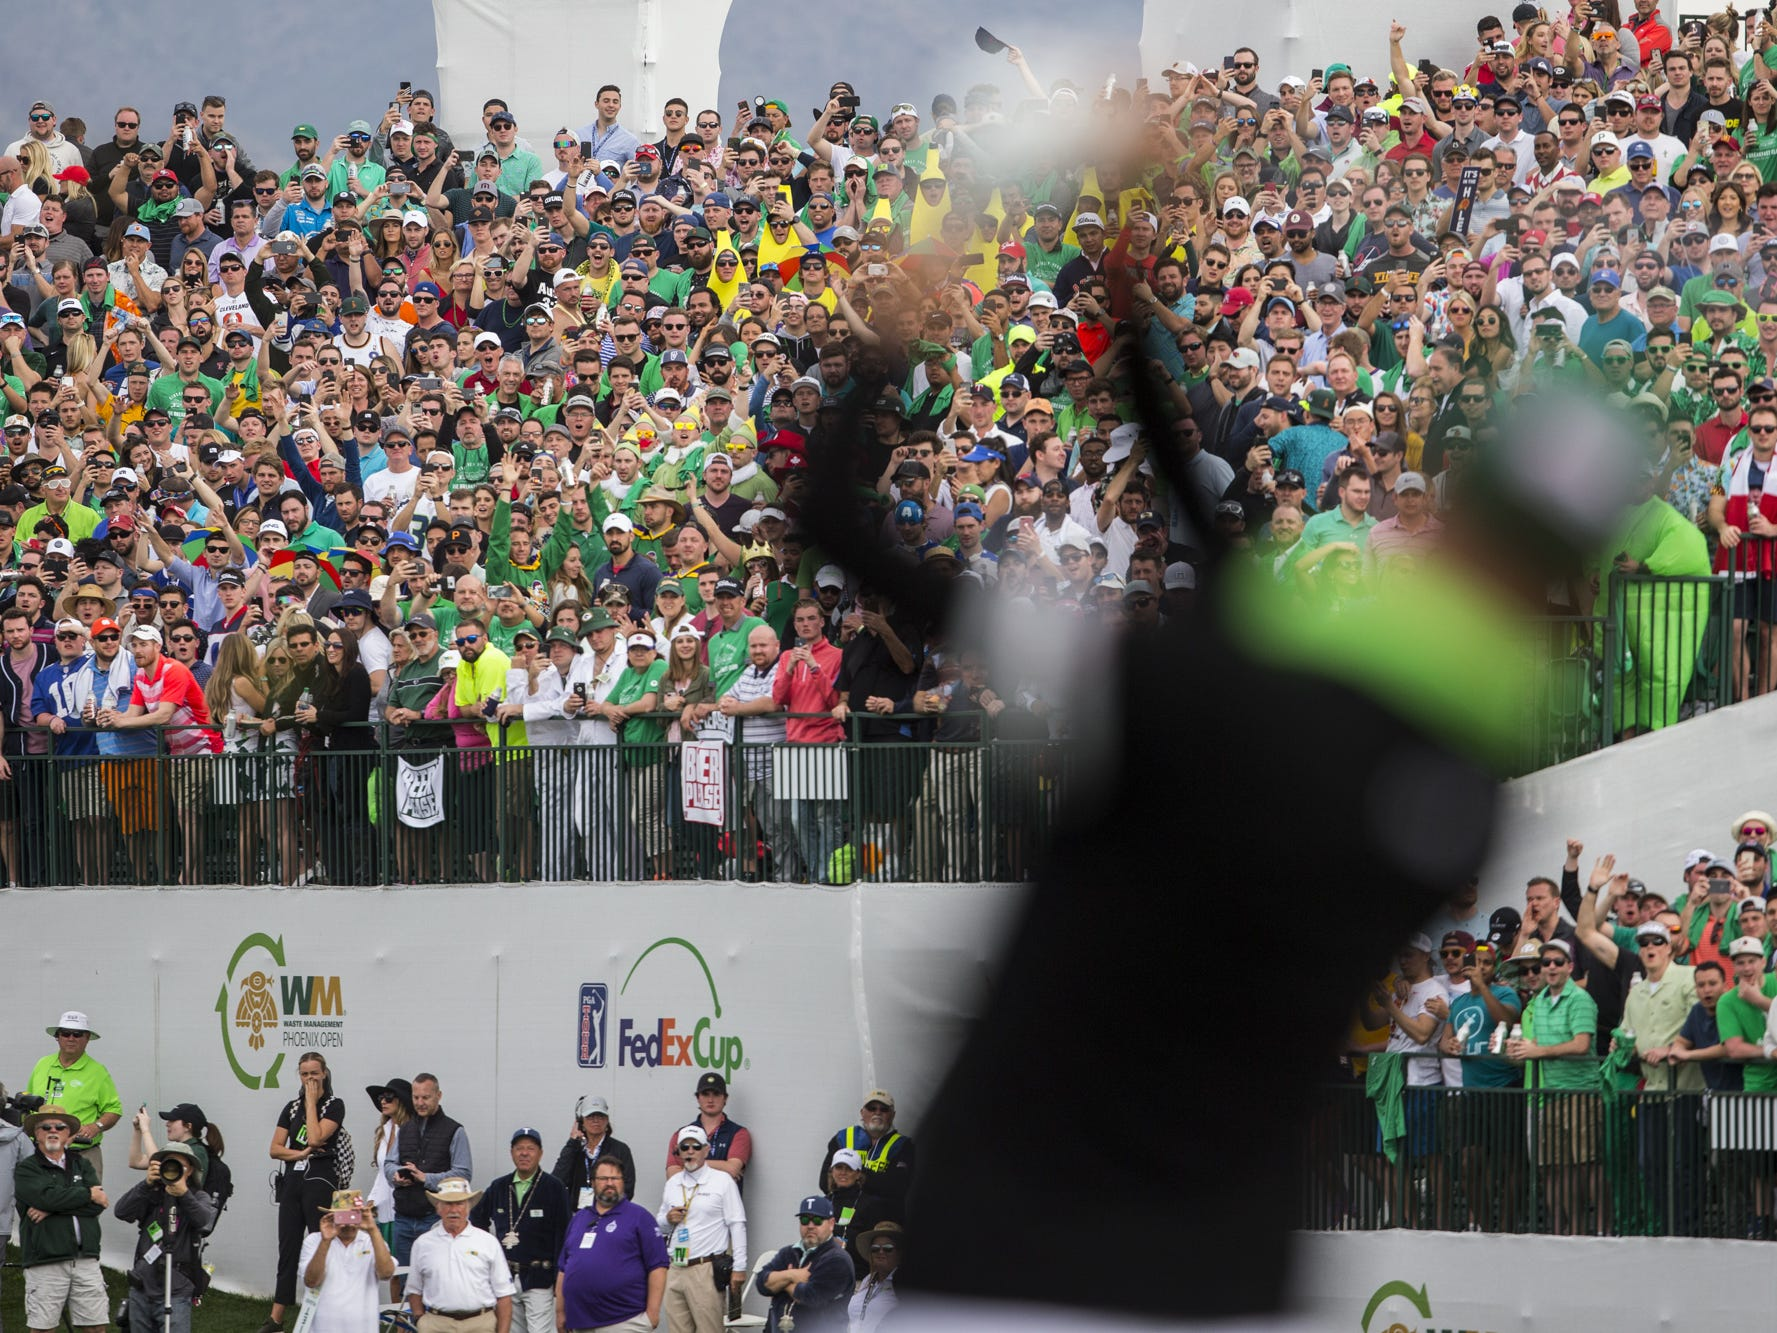 Fans watch as Justin Thomas tees off on the 16th hole during Round 3 of the Waste Management Phoenix Open on Saturday, Feb. 2, 2019, at TPC Scottsdale in Scottsdale, Ariz.